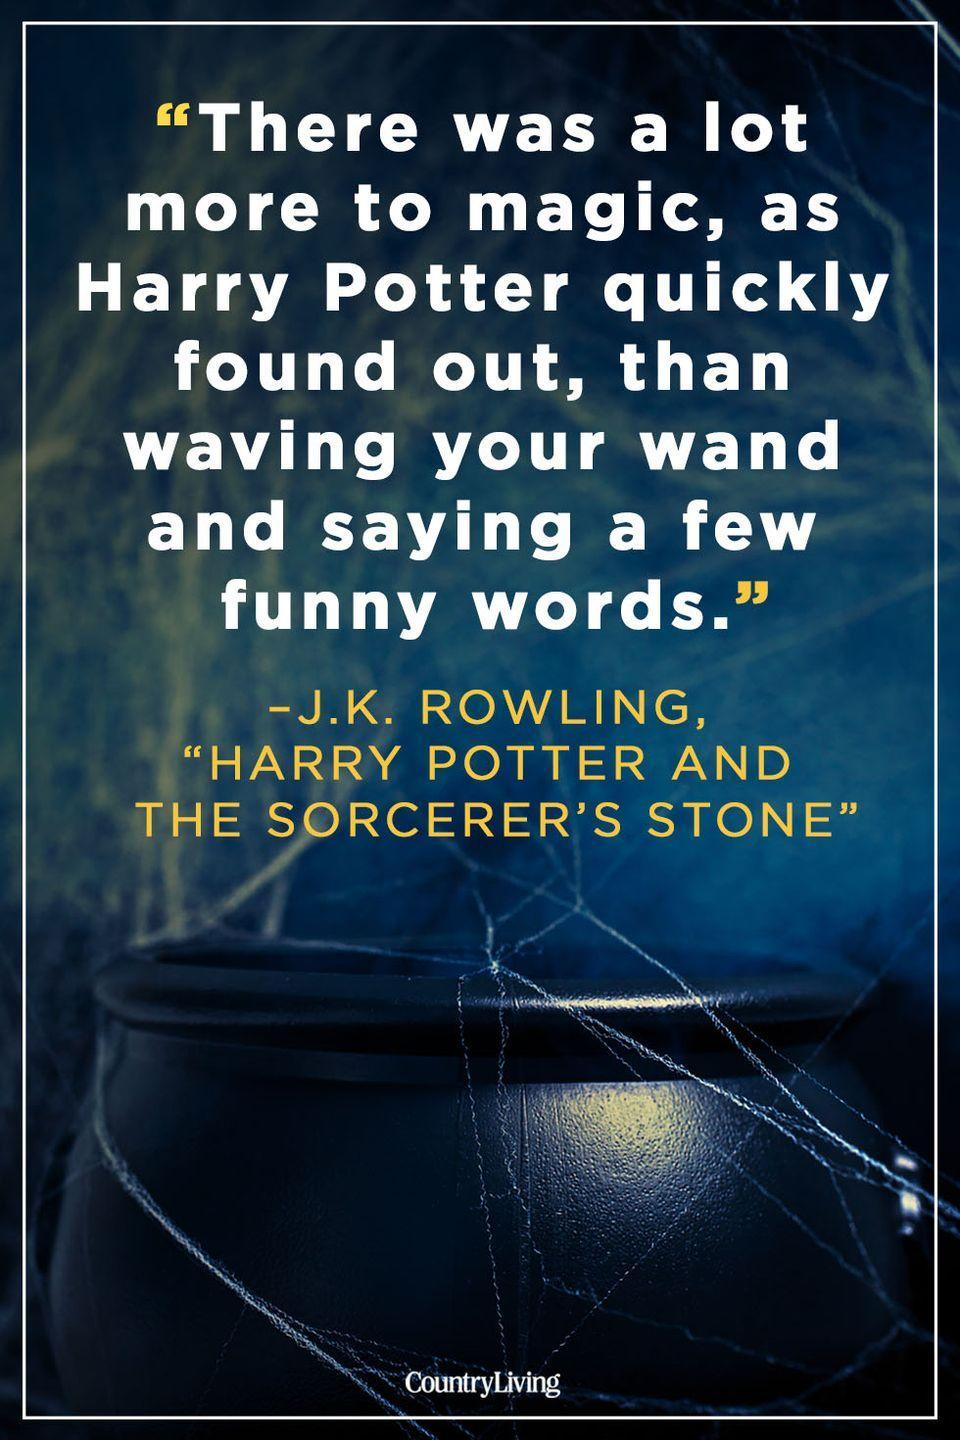 """<p>""""There was a lot more to magic, as Harry Potter quick found out, than waving your wand and saying a few funny words.""""</p>"""